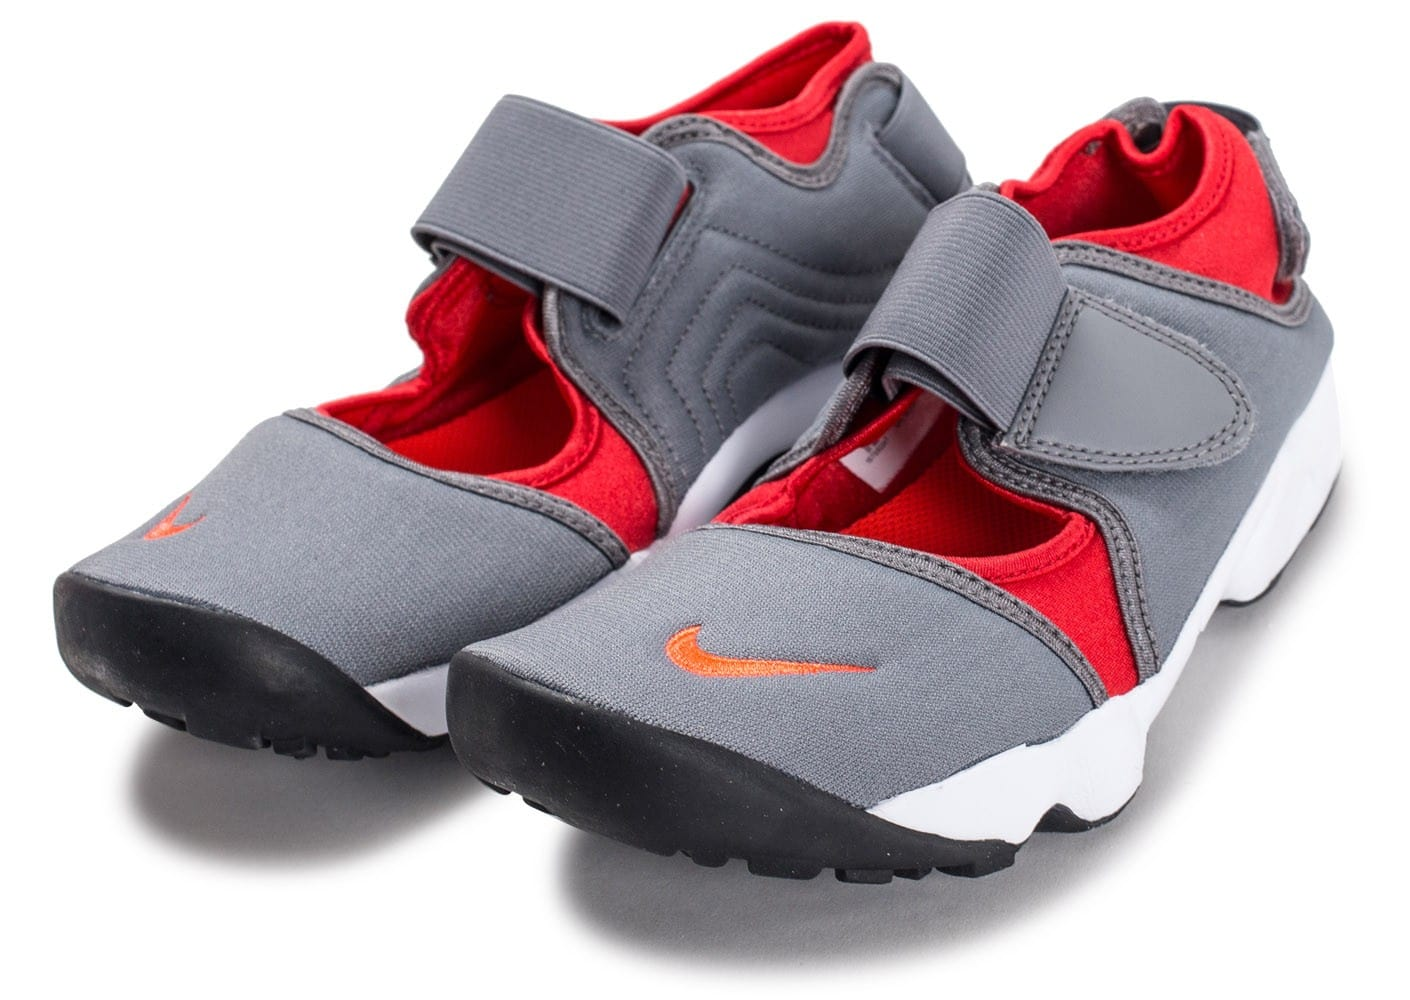 the best attitude 9bf78 ae9b2 ... Chaussures Nike Rift Junior grise et rouge vue intérieure ...